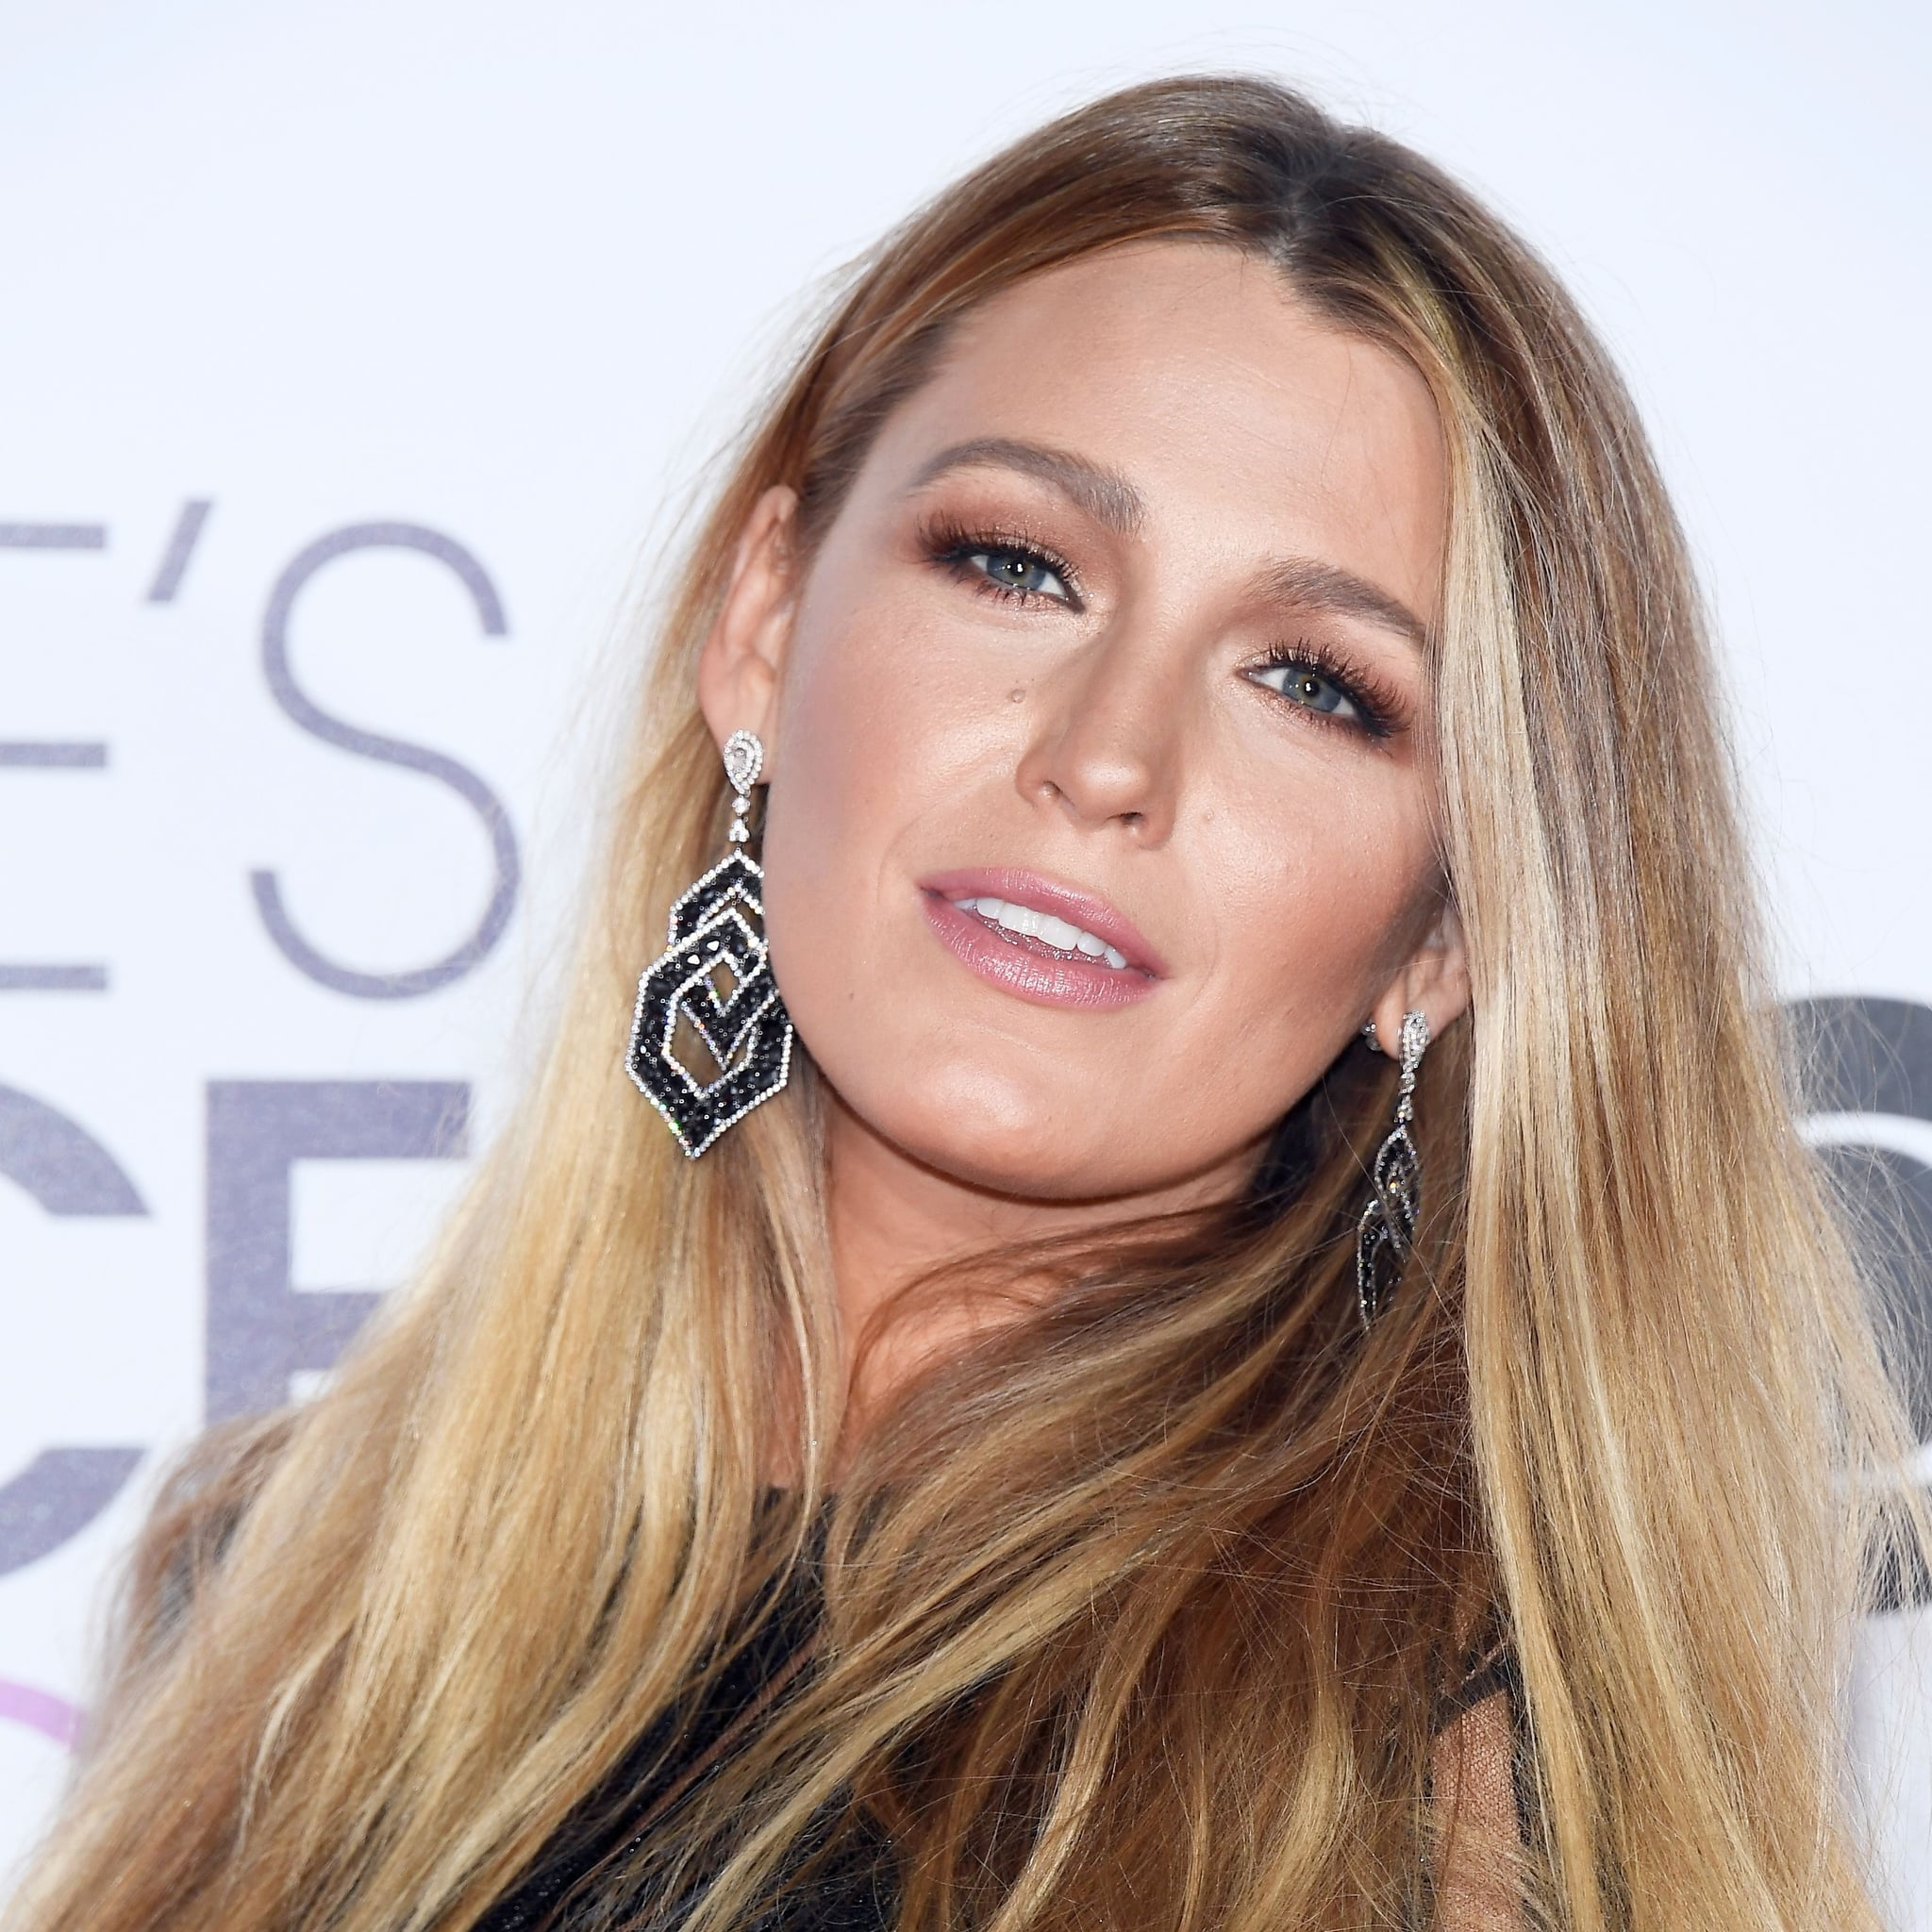 Blake lively hair and makeup at peoples choice awards 2017 blake lively hair and makeup at peoples choice awards 2017 popsugar beauty urmus Image collections